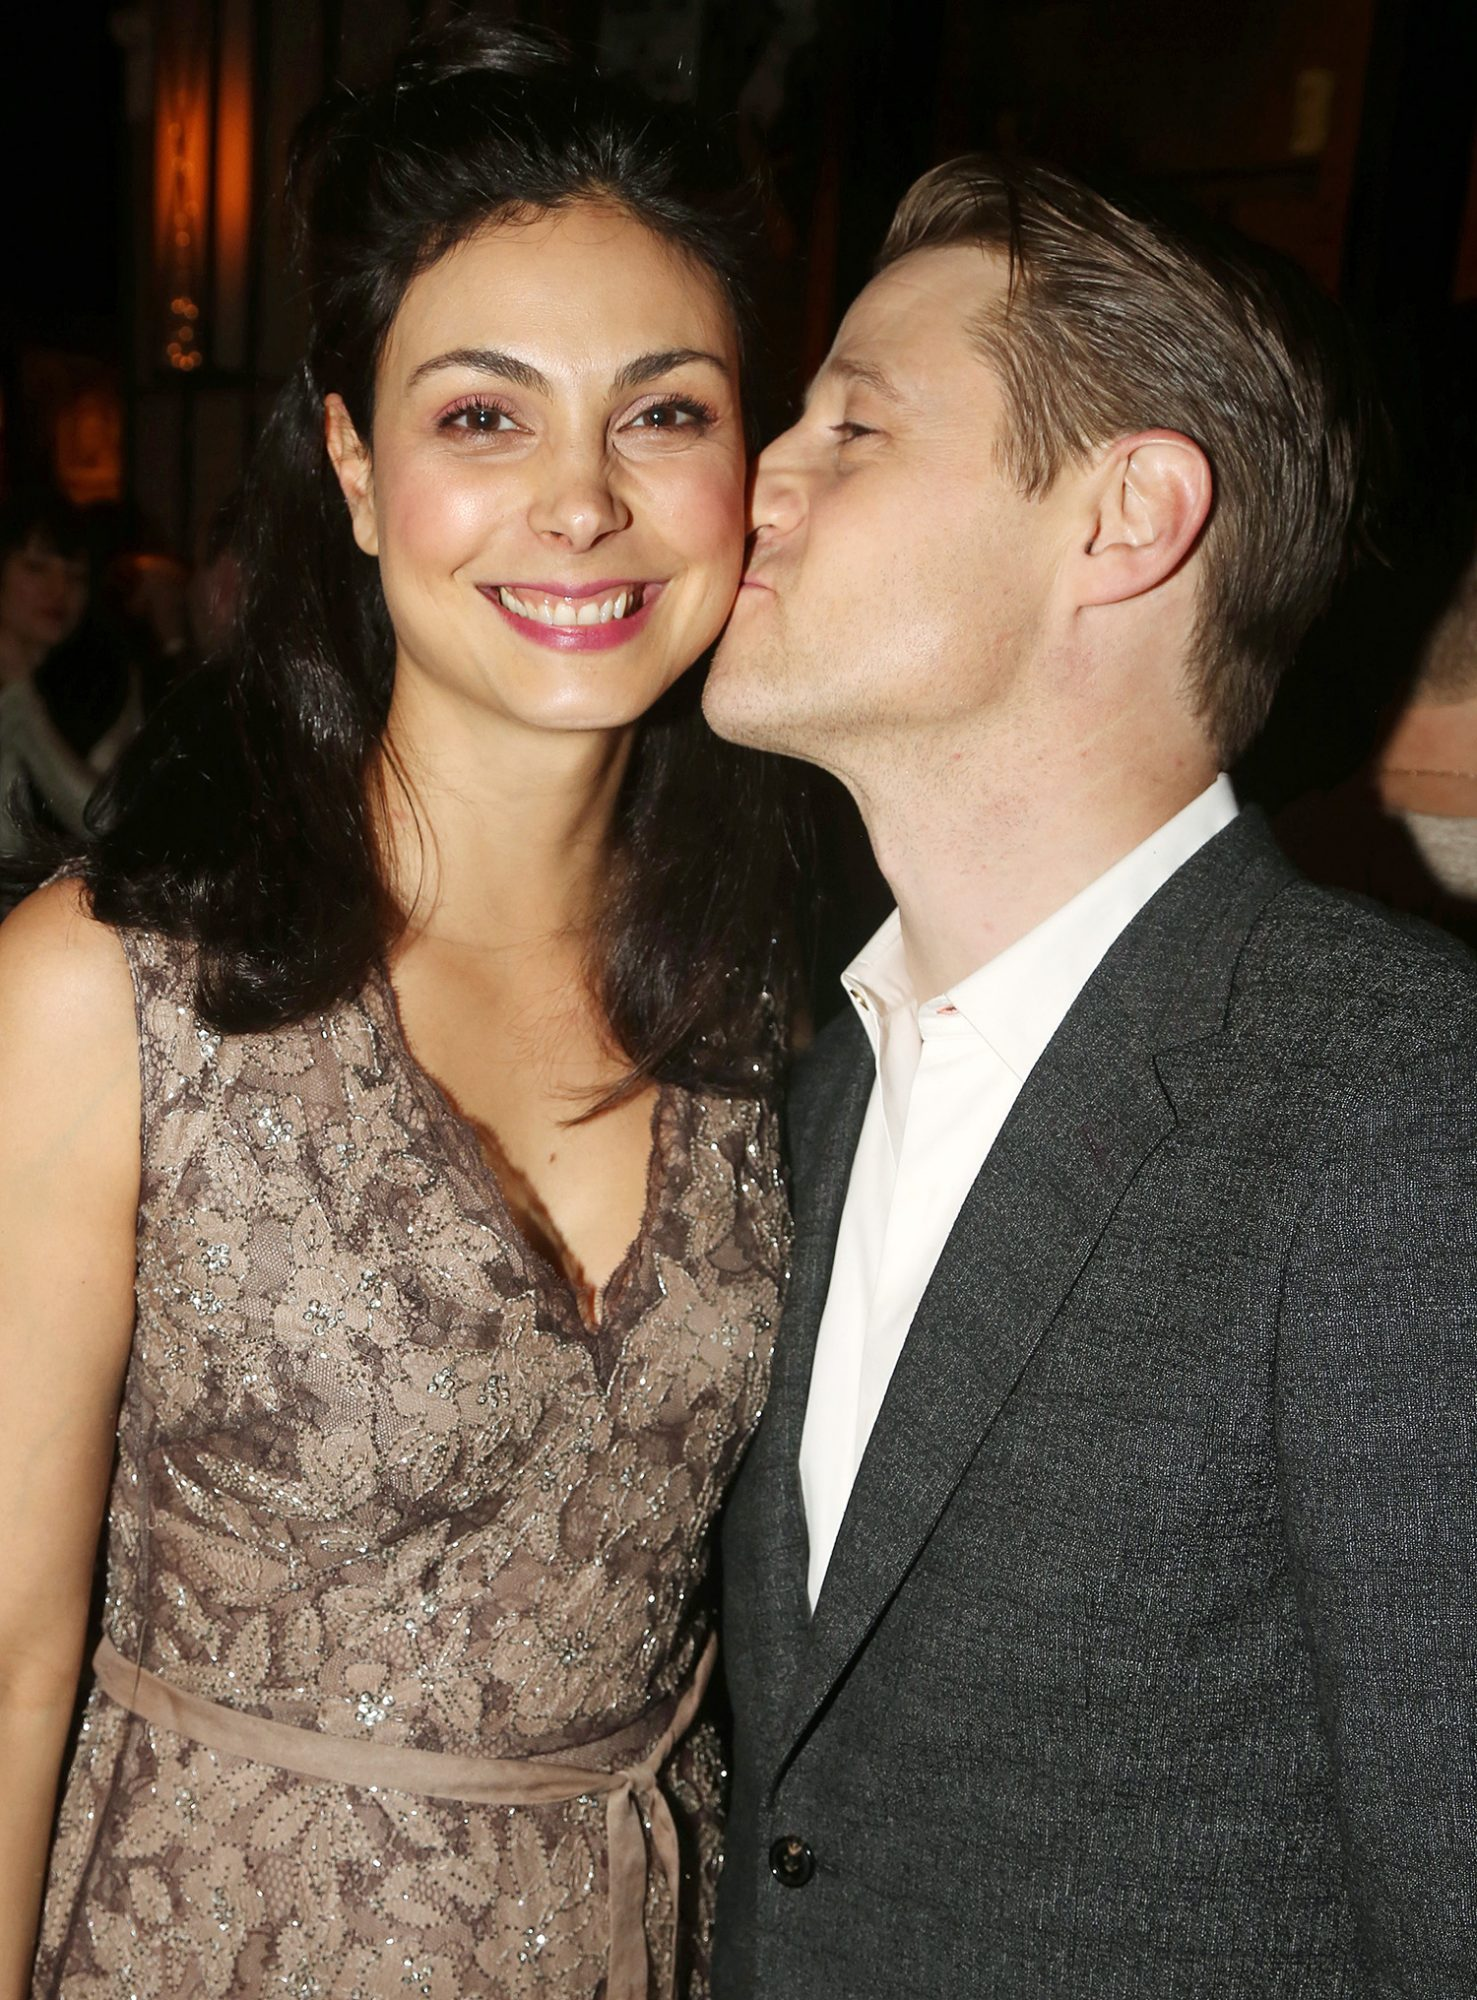 """Morena Baccarin and Ben McKenzie pose at the opening night after party for the new Second Stage play """"Grand Horizons"""" on Broadway at The Ribbon on January 23, 2020 in New York City"""